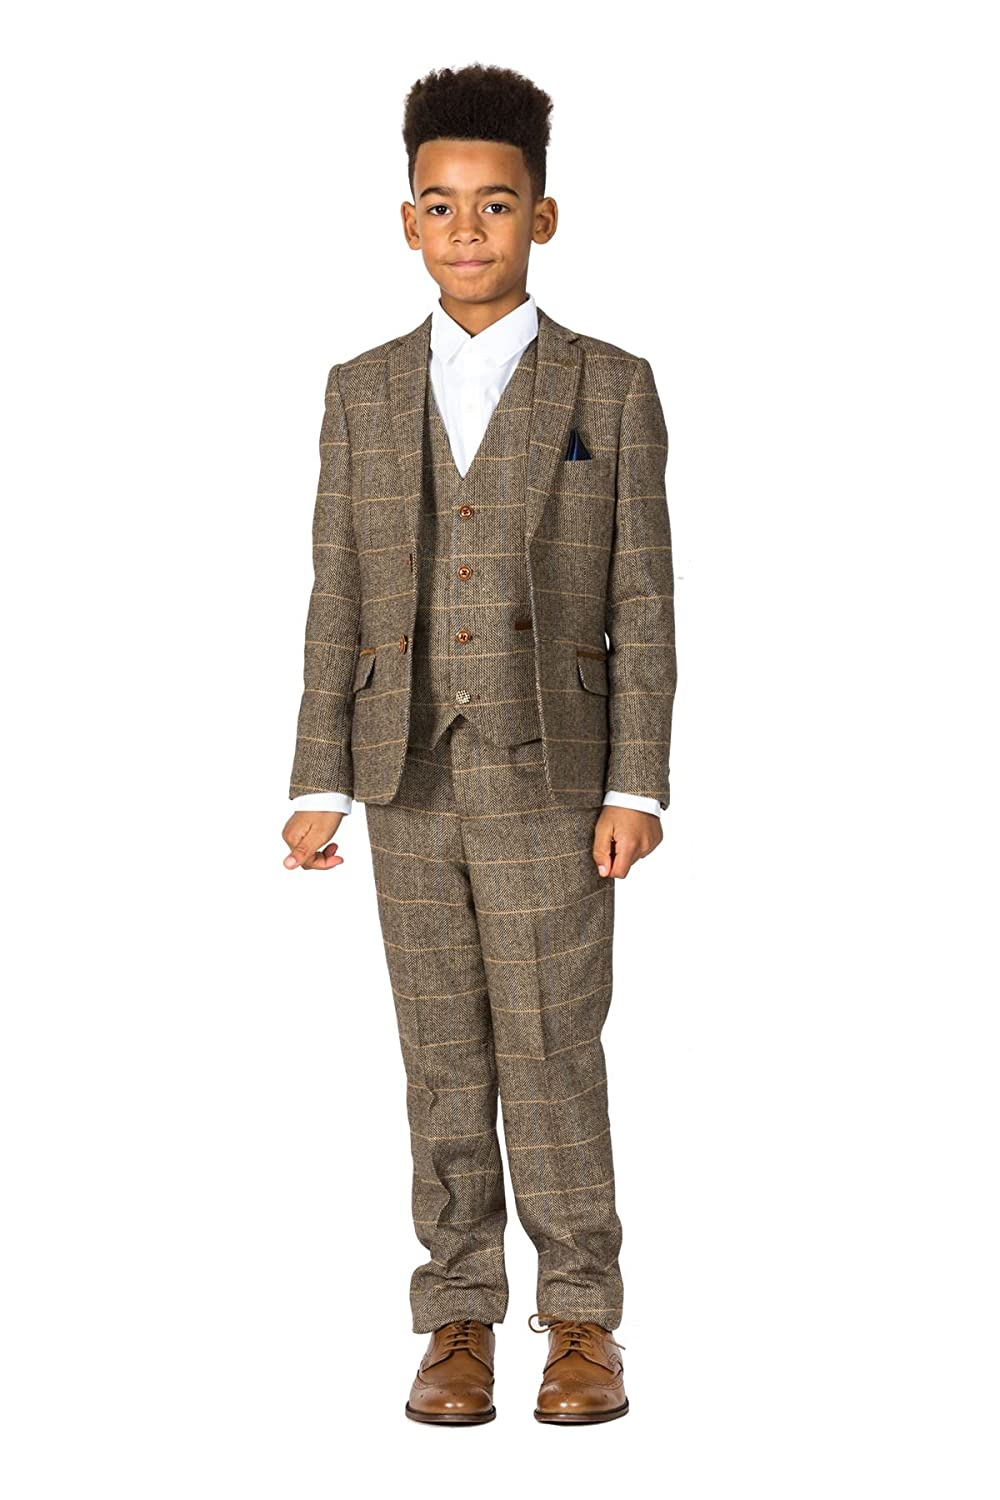 Vintage Style Children's Clothing: Girls, Boys, Baby, Toddler Marc Darcy Boys Tan Green Tweed Suit and Wedding Suit for Page Boy Or Prom Party 1-14 Years | Wedding Suits  AT vintagedancer.com